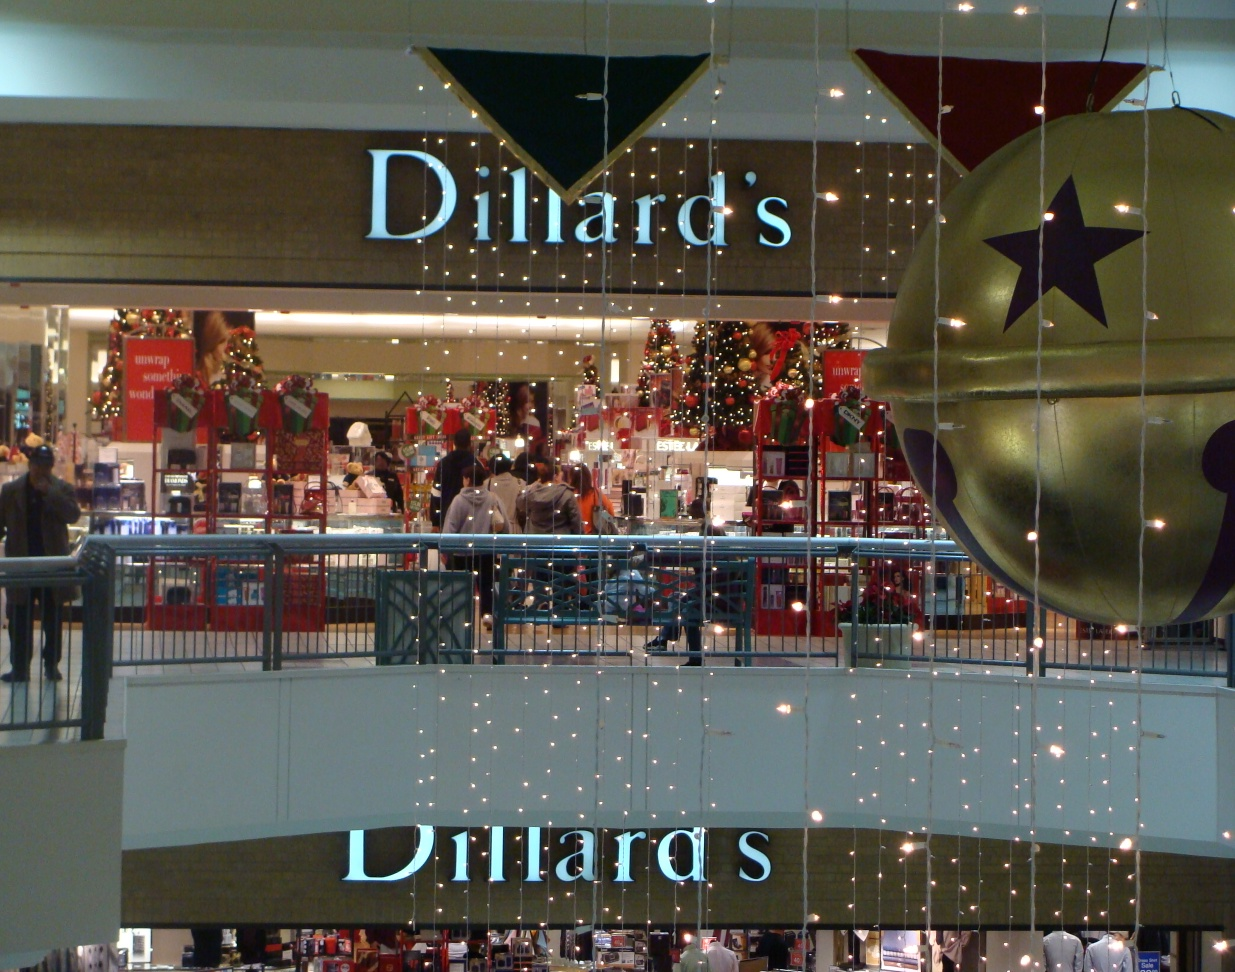 File:Dillards Ingram Park Mall.JPG - Wikimedia Commons